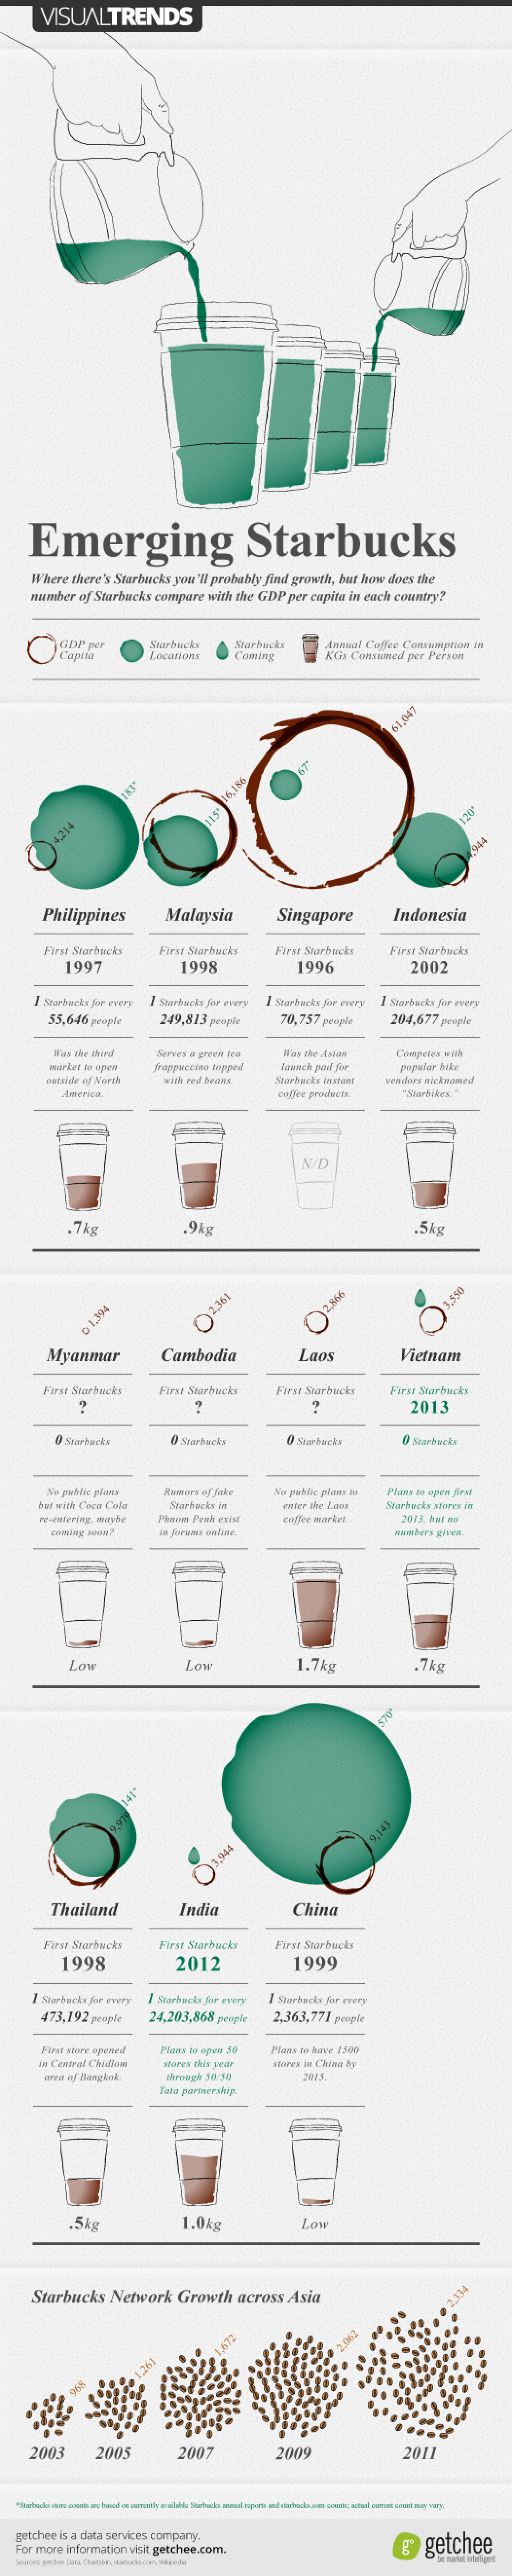 Emerging Starbucks - Starbucks growth and GDP in asia Infographic